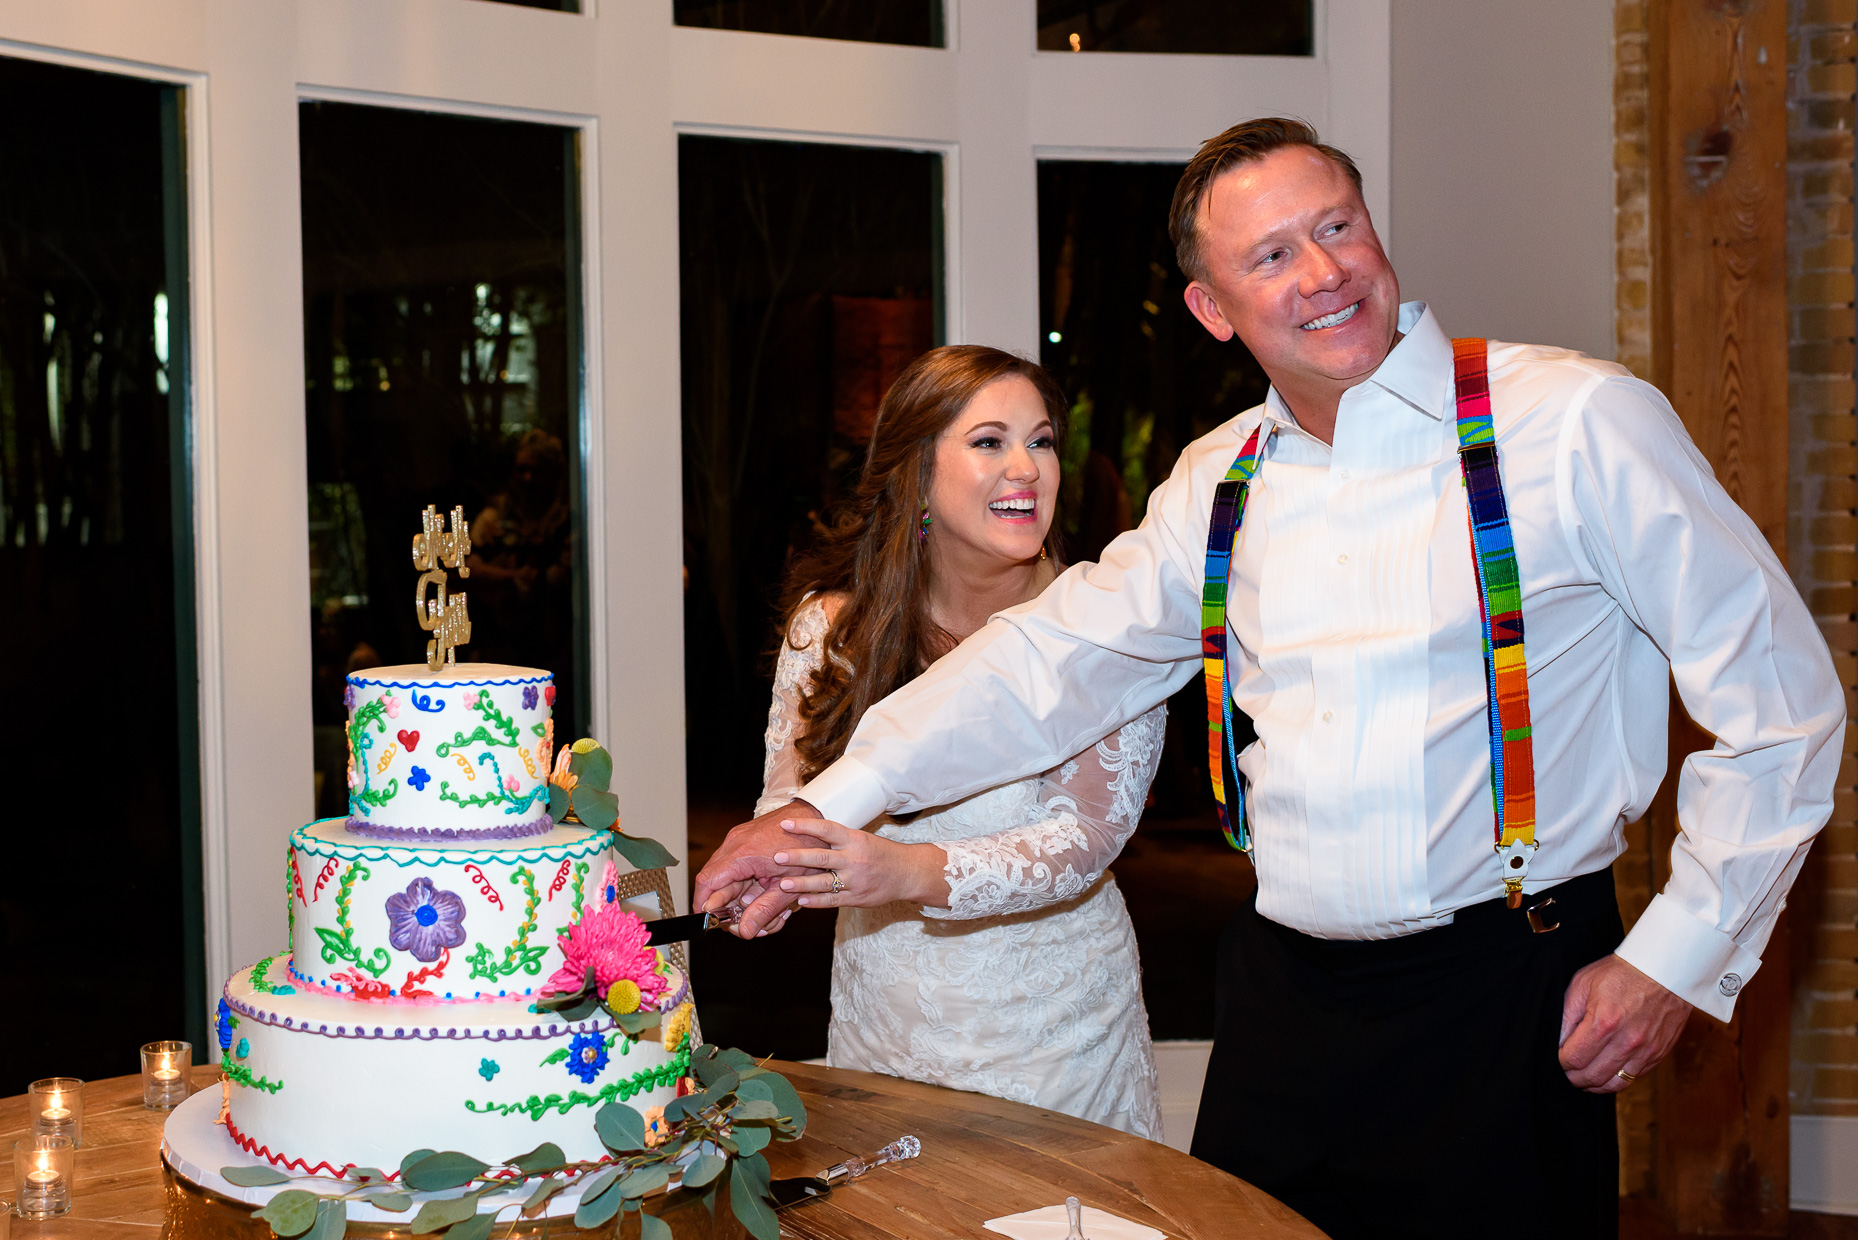 Austin-Wedding-Photographer-cake-cutting-suspenders-zaza-gardens-san-antonio